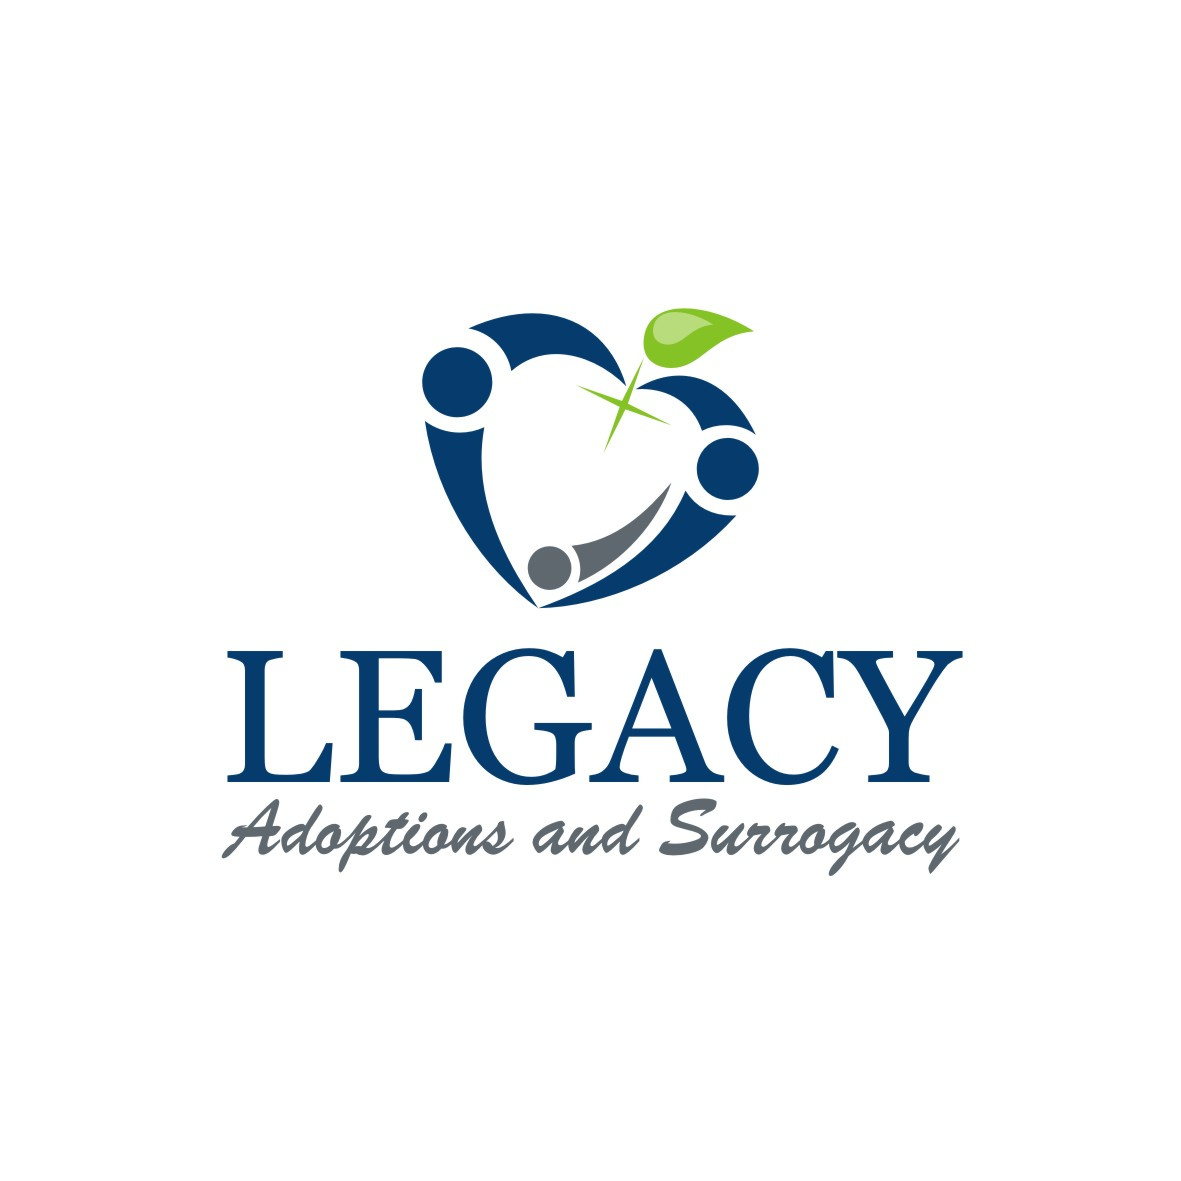 Logo Design by arteo_design - Entry No. 114 in the Logo Design Contest Legacy Adoptions and Surrogacy Logo Design.